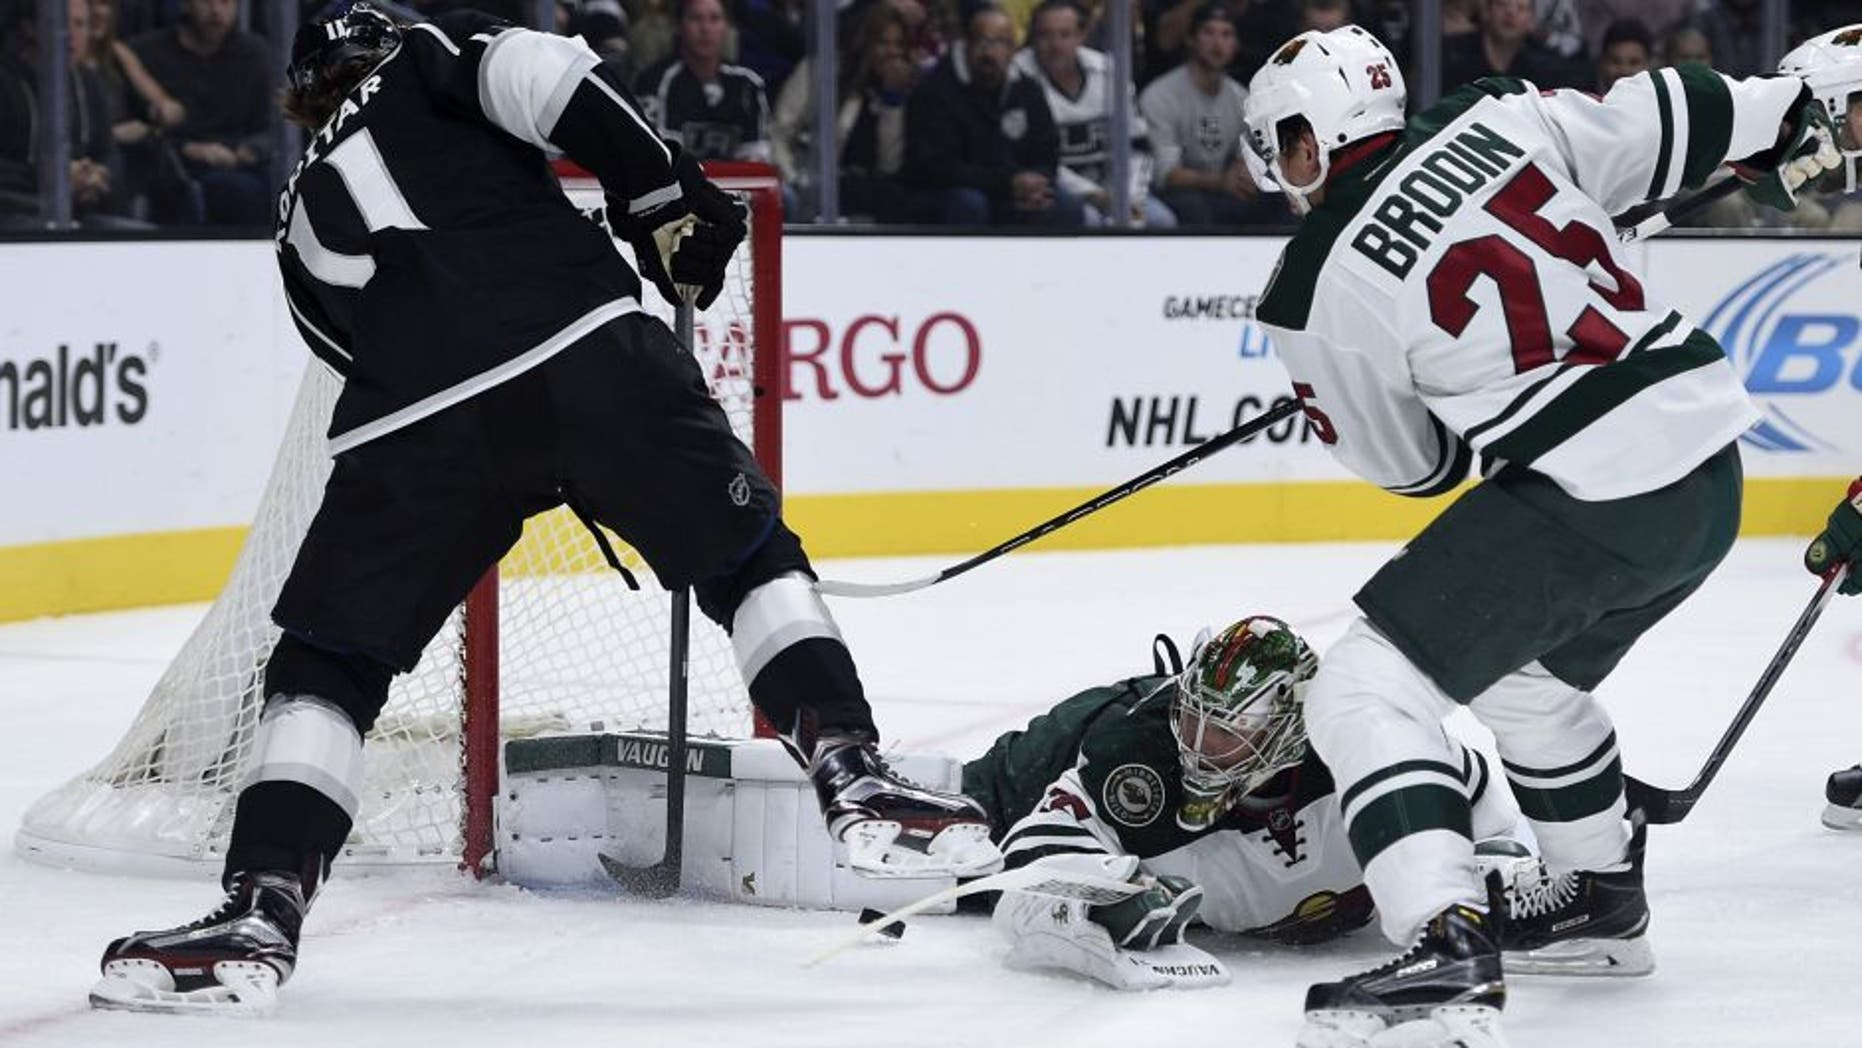 Oct 16, 2015; Los Angeles, CA, USA; Minnesota Wild goalie Darcy Kemper (center) blocks a shot by Los Angeles Kings center Anze Kopitar (left) during the first period at Staples Center. Mandatory Credit: Kelvin Kuo-USA TODAY Sports